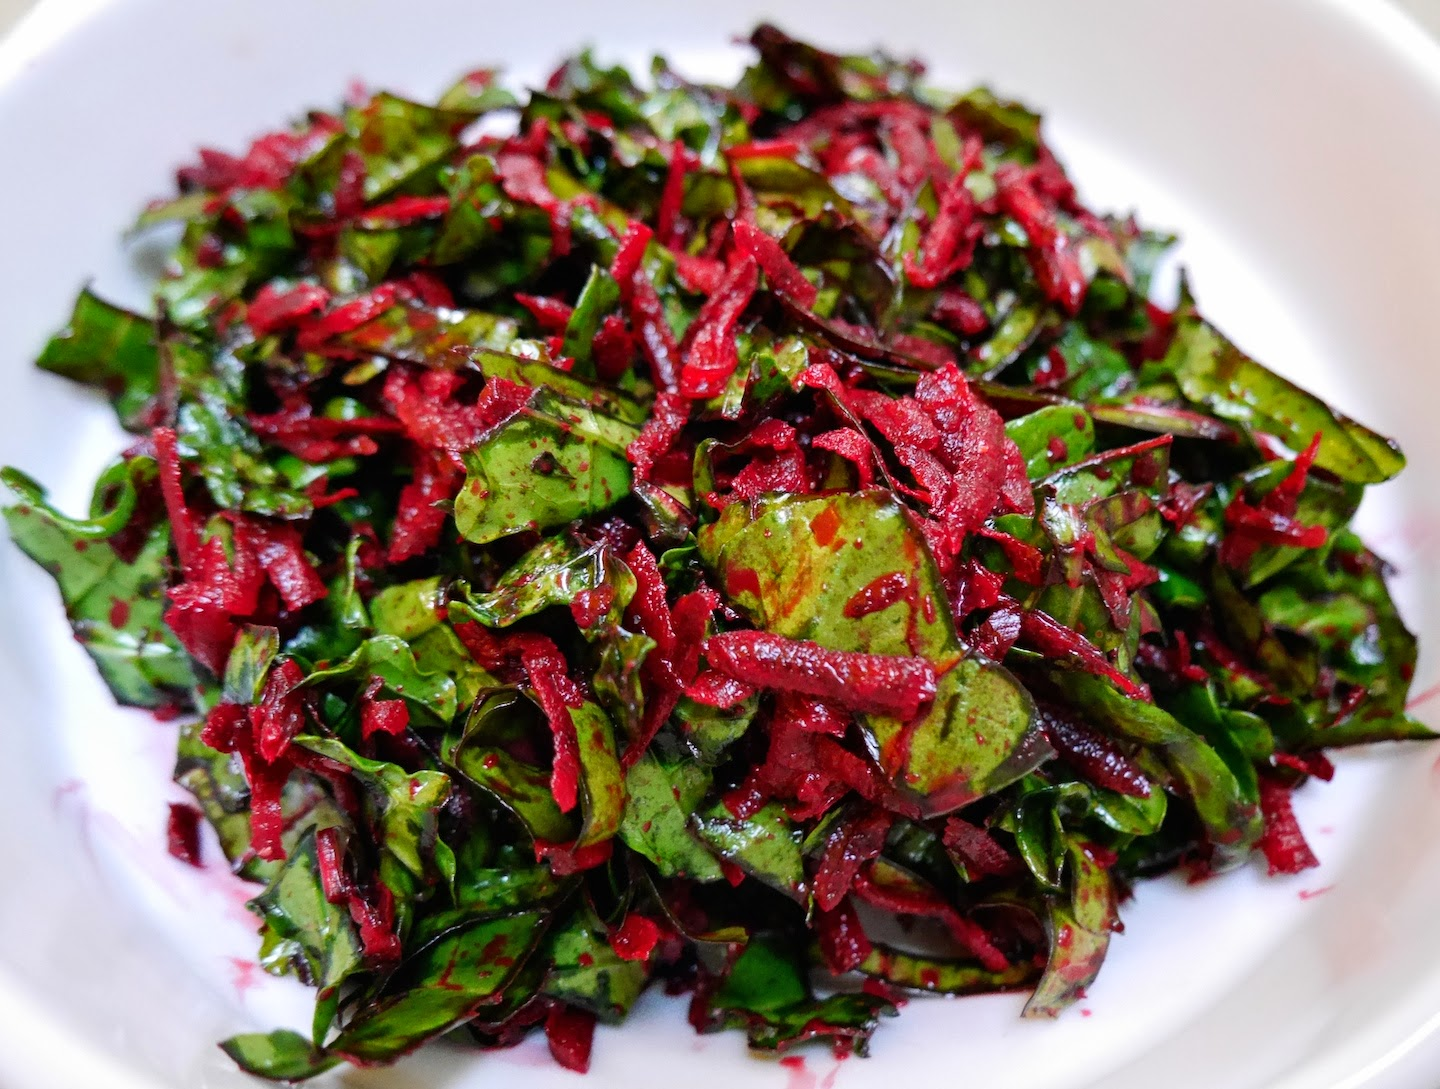 Foods For Long Life: Raw Beet And Kale Salad A Delicious Way To Detox ...